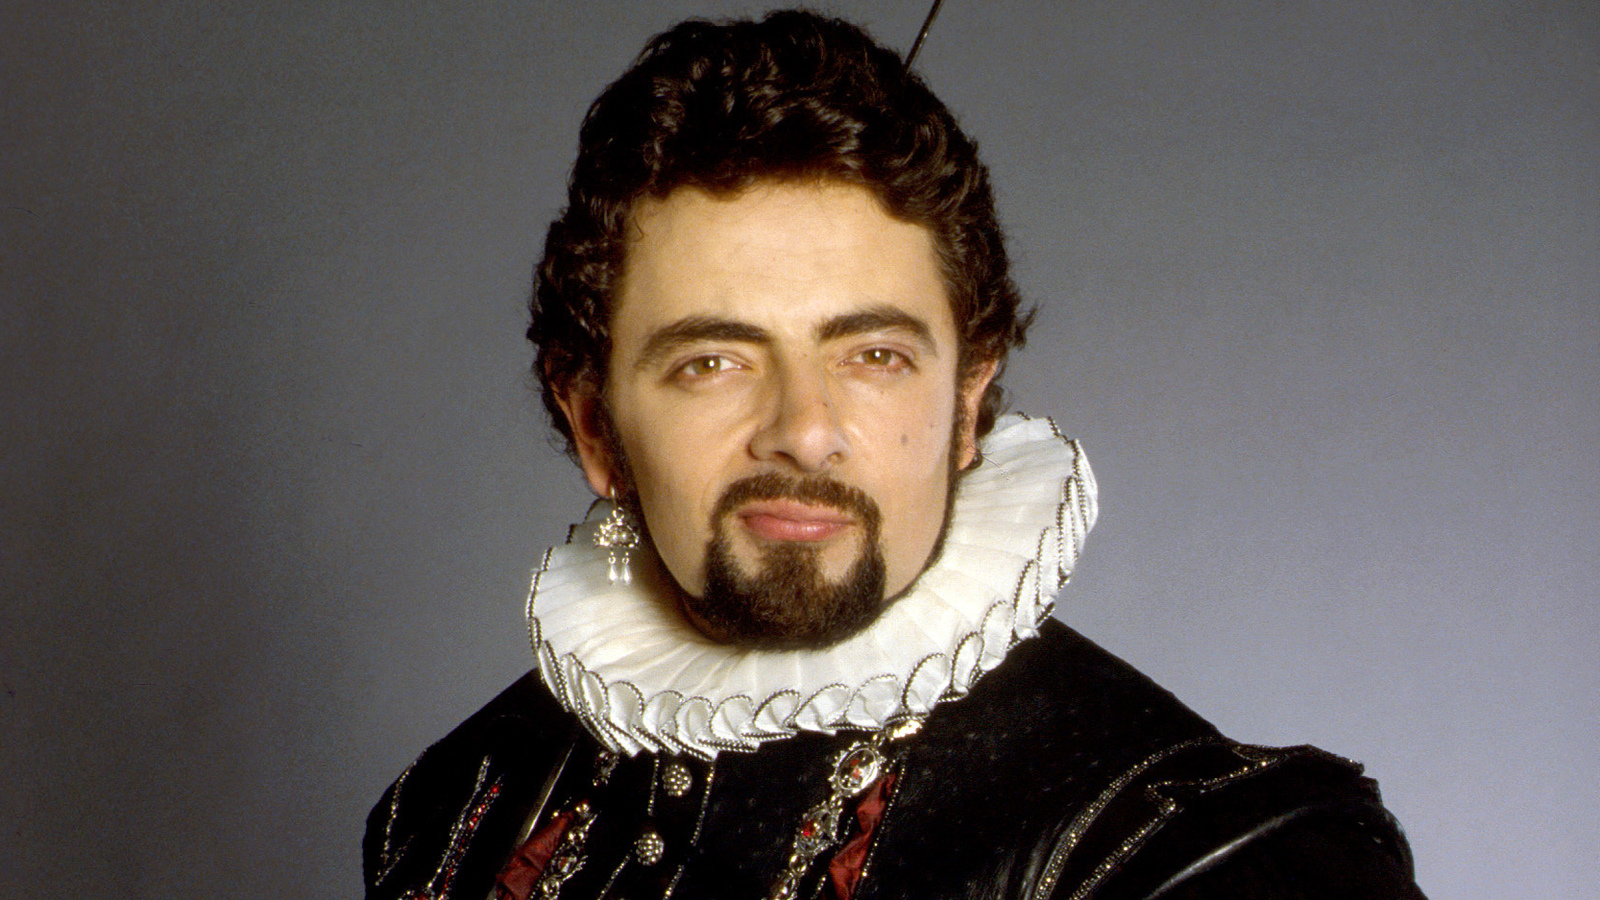 Rowan Atkinson - Born January 6th 1955. Happy Birthday Blackadder!